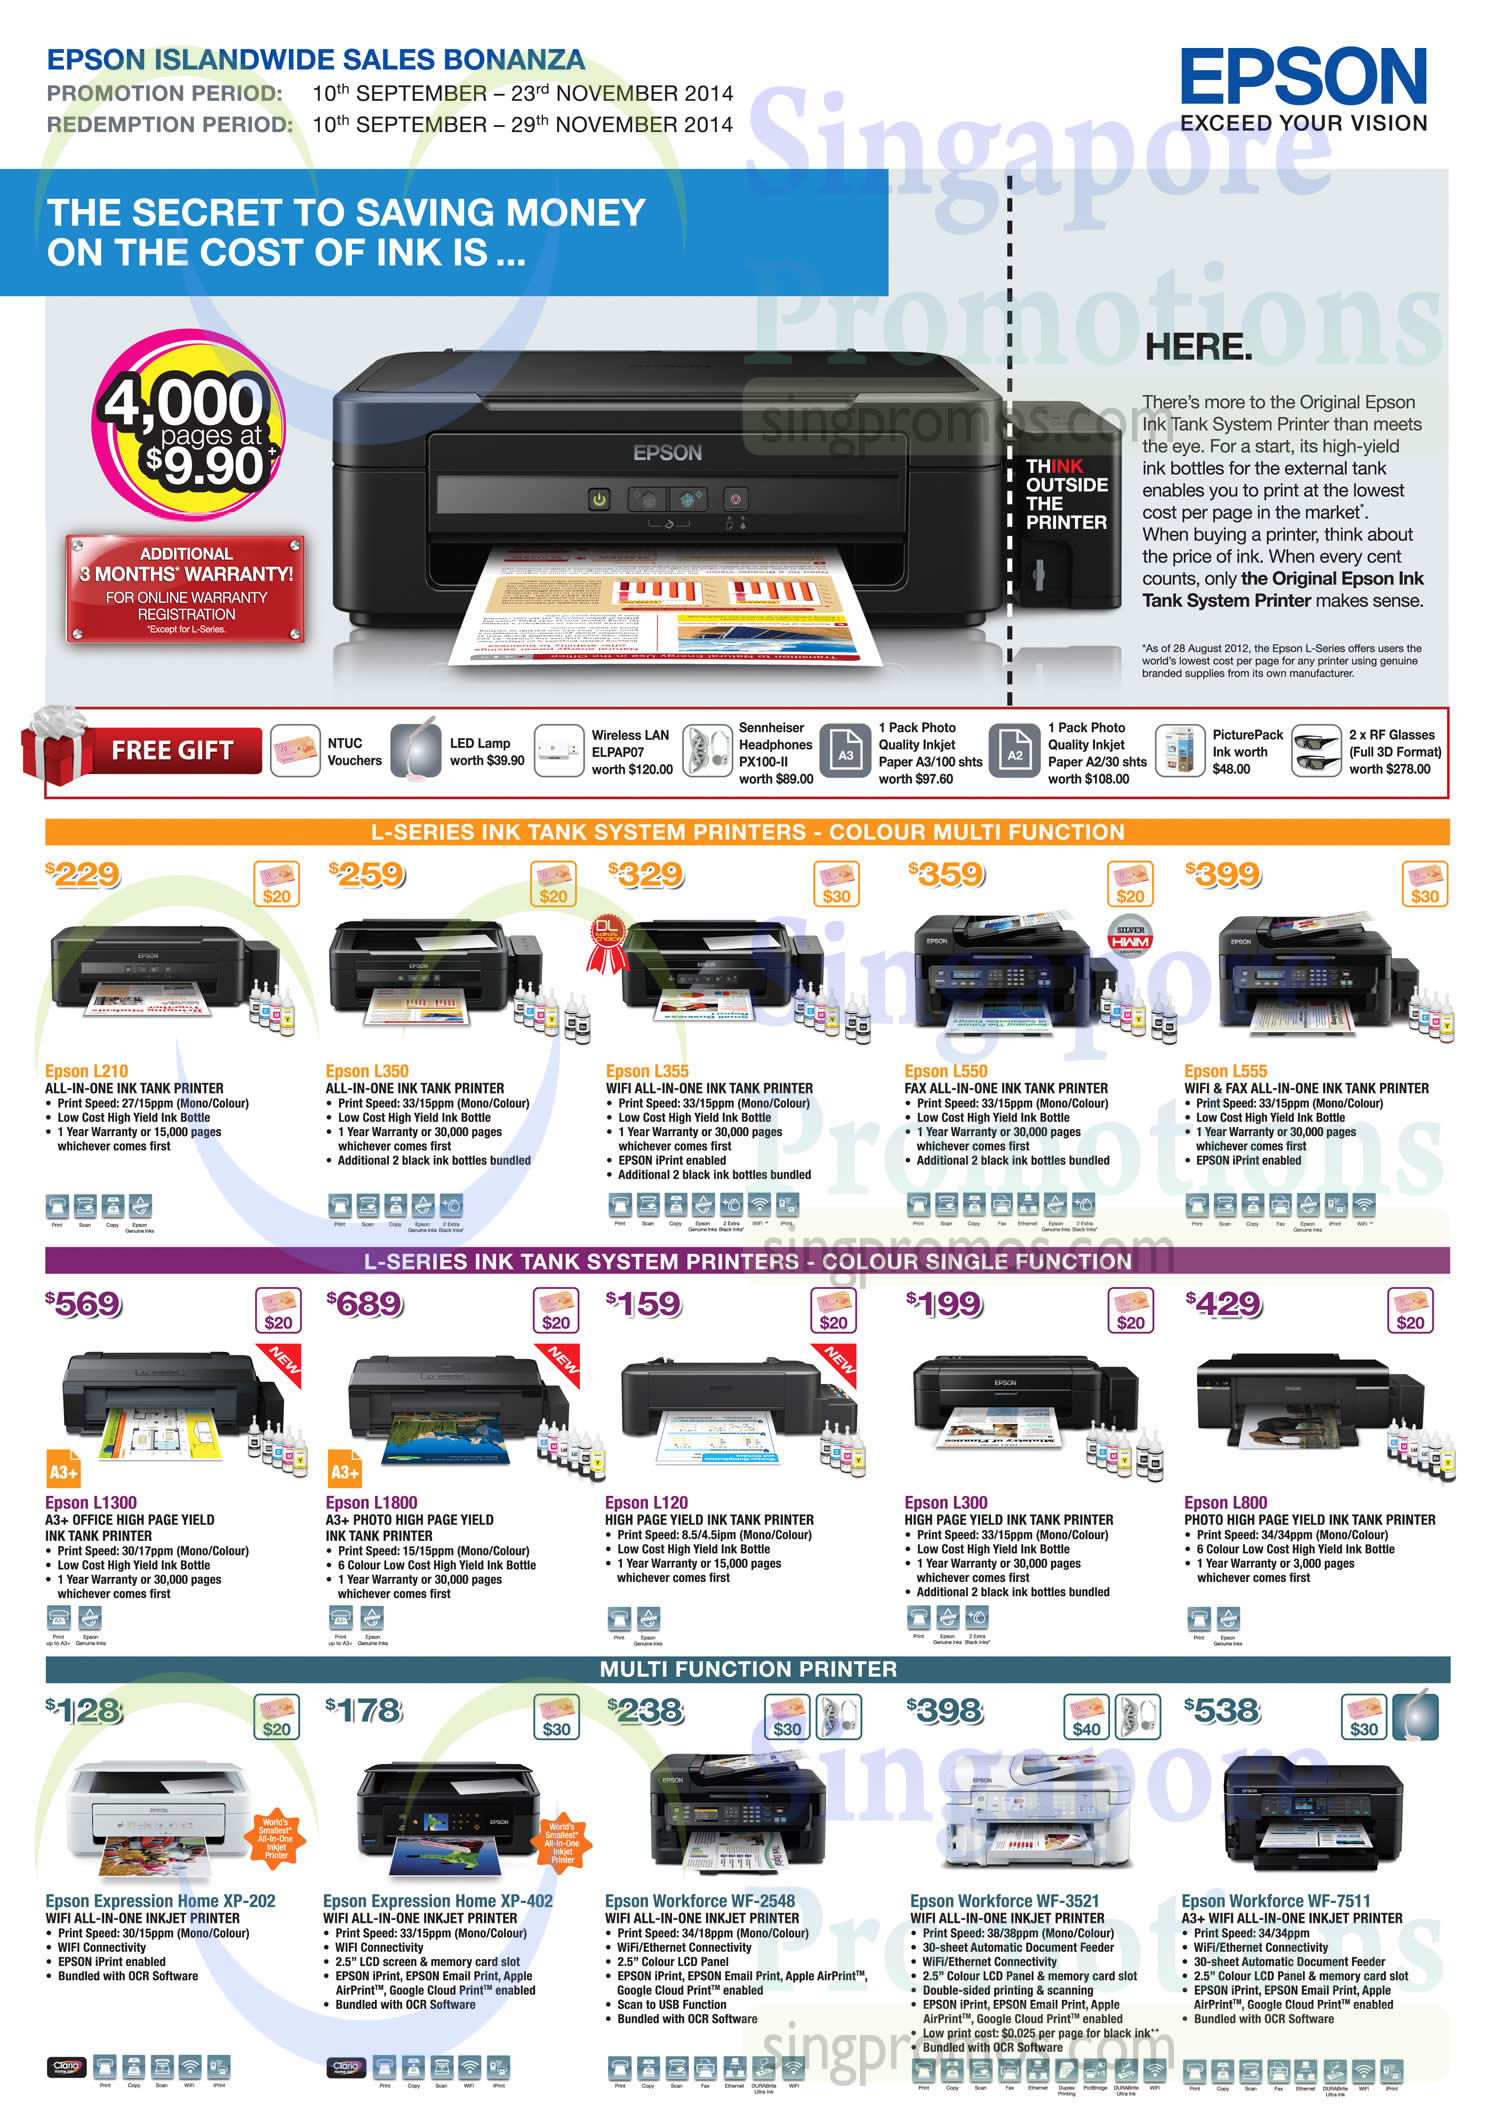 Epson Printers Scanners Labellers Projectors Offers 10 Sep 23 Printer L1300 Nov 2014